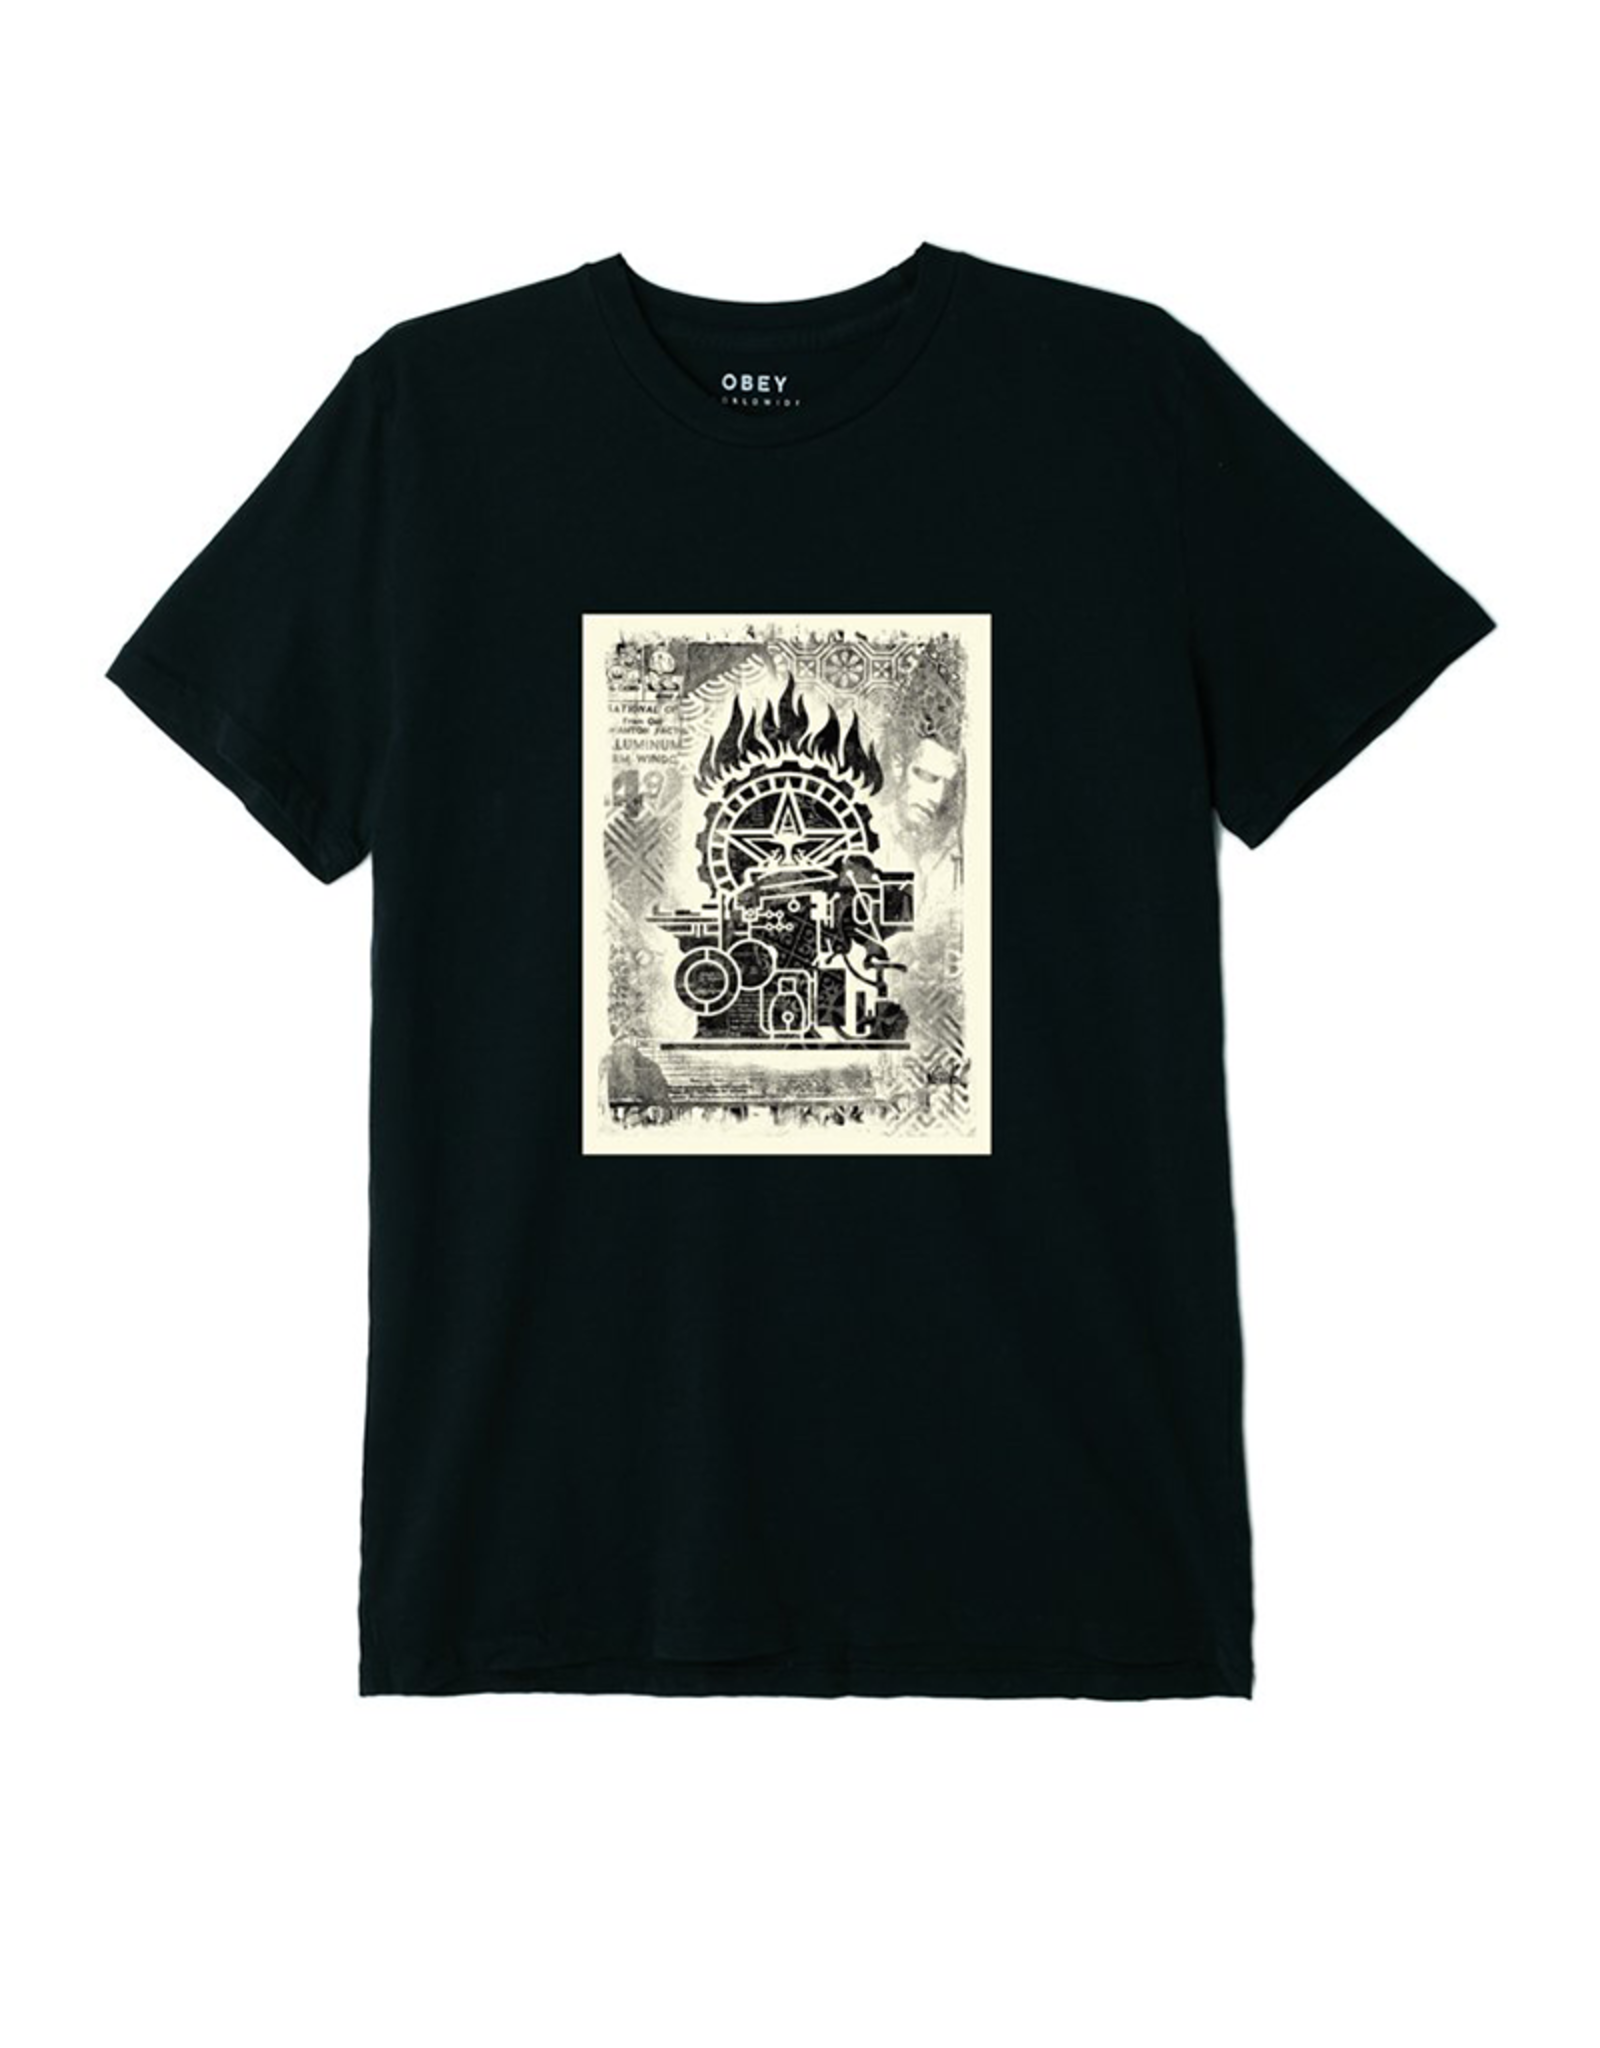 Obey Press Etching Tee